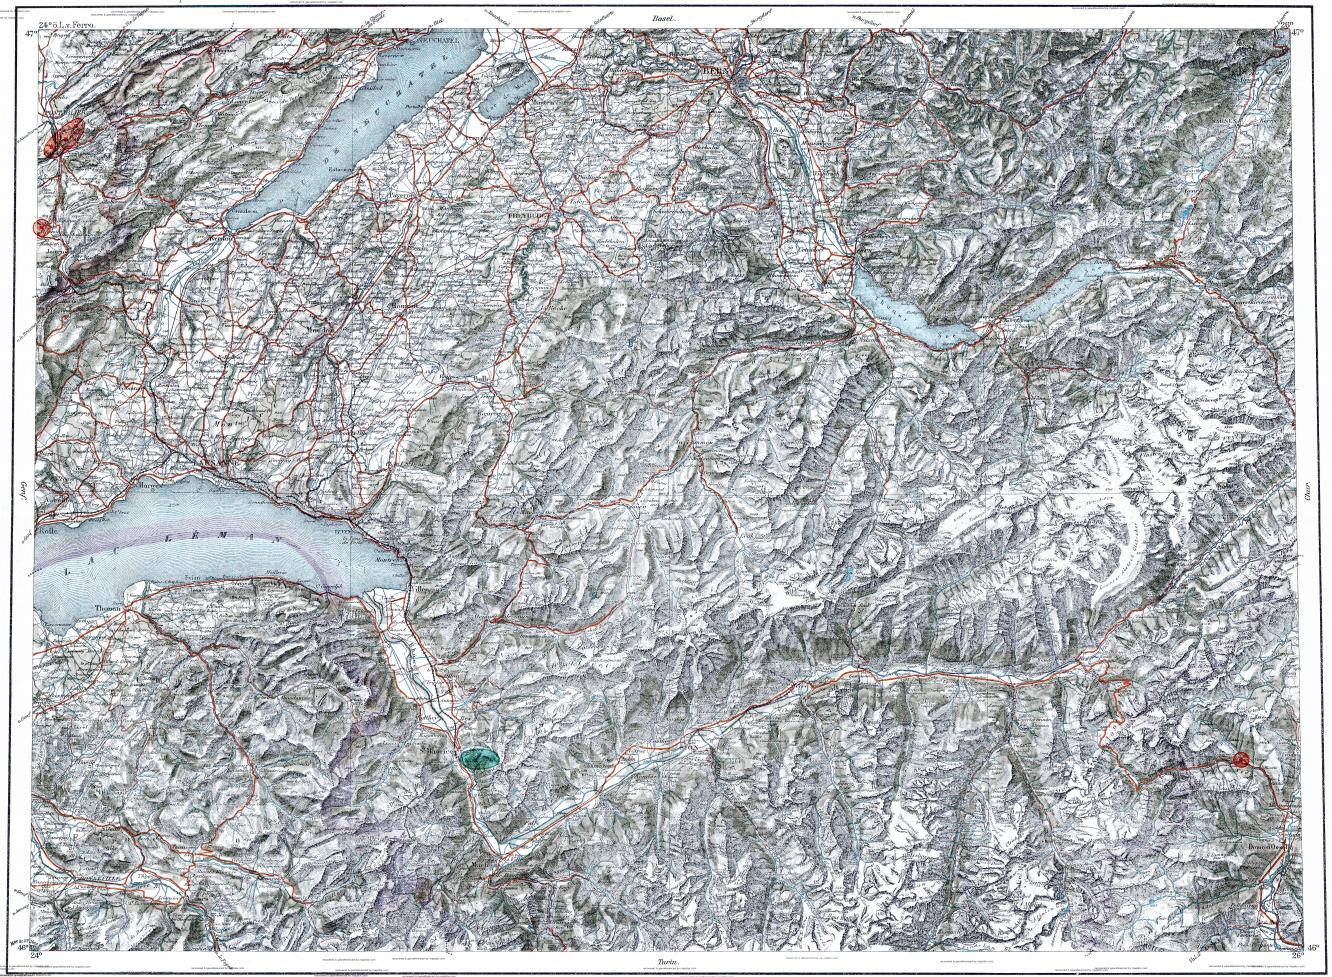 Download Topographic Map In Area Of Lausanne Bern Sion Mapstorcom - Lausanne city map